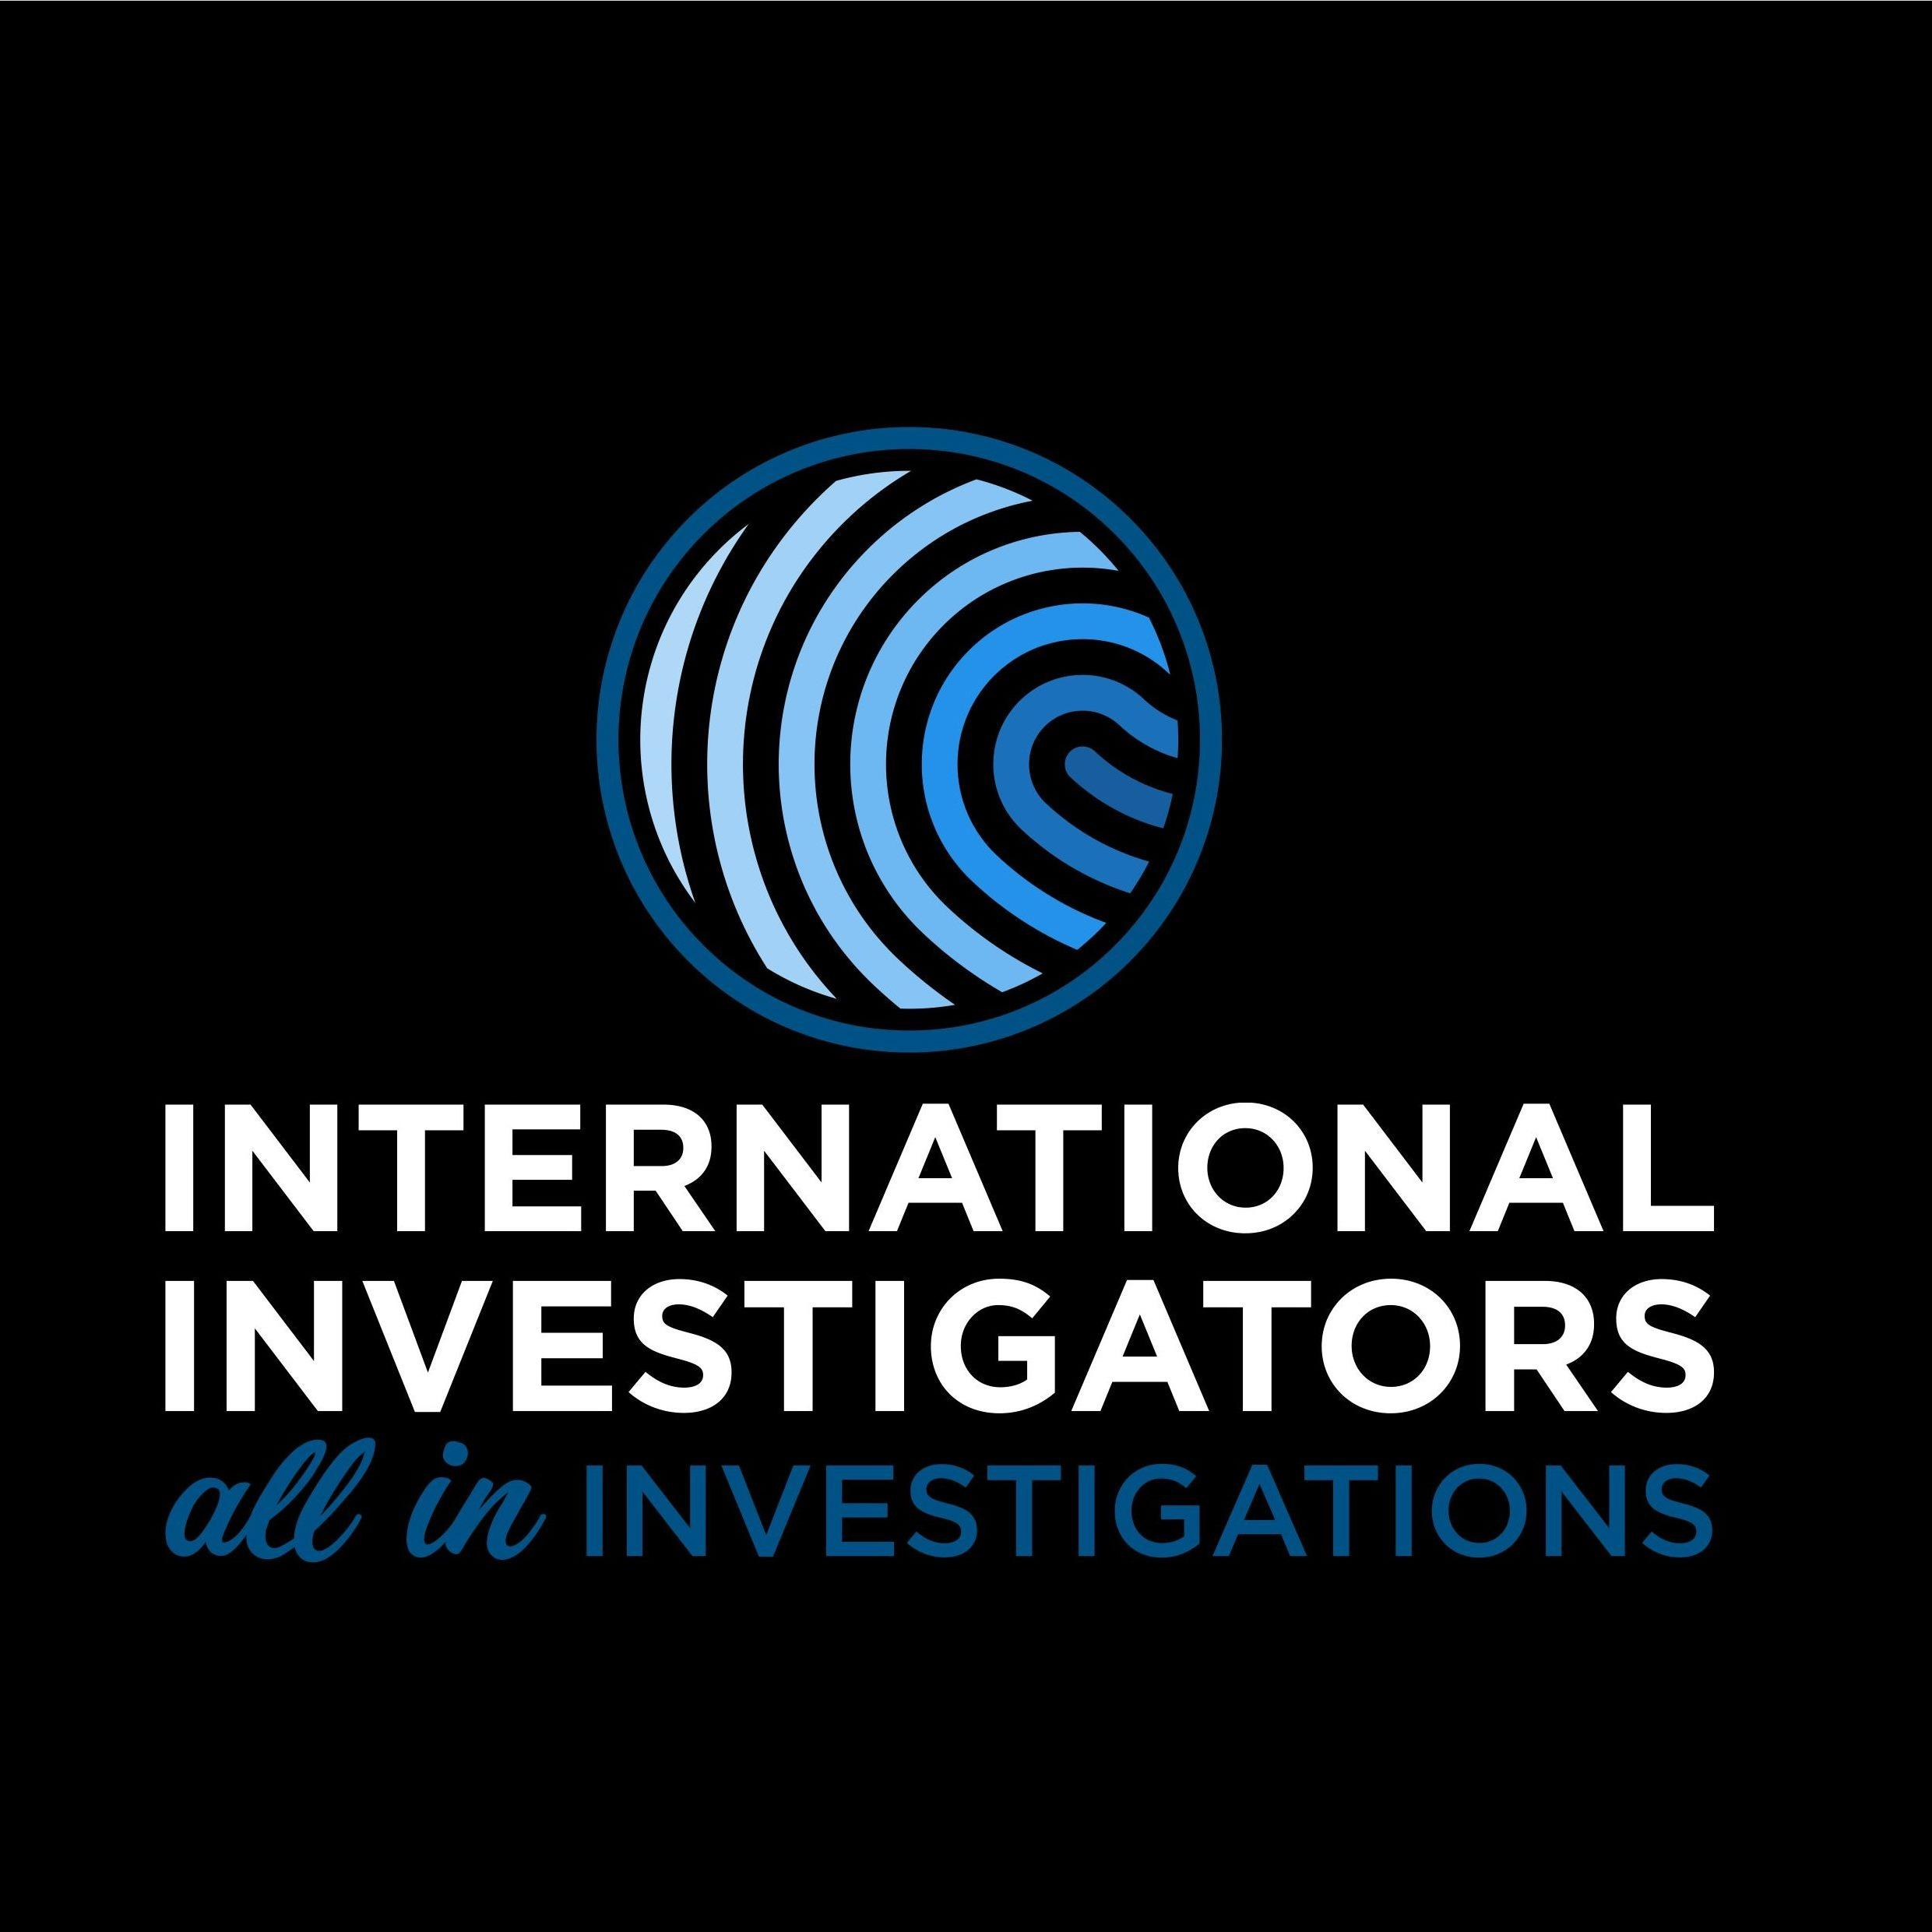 International Investigators Inc